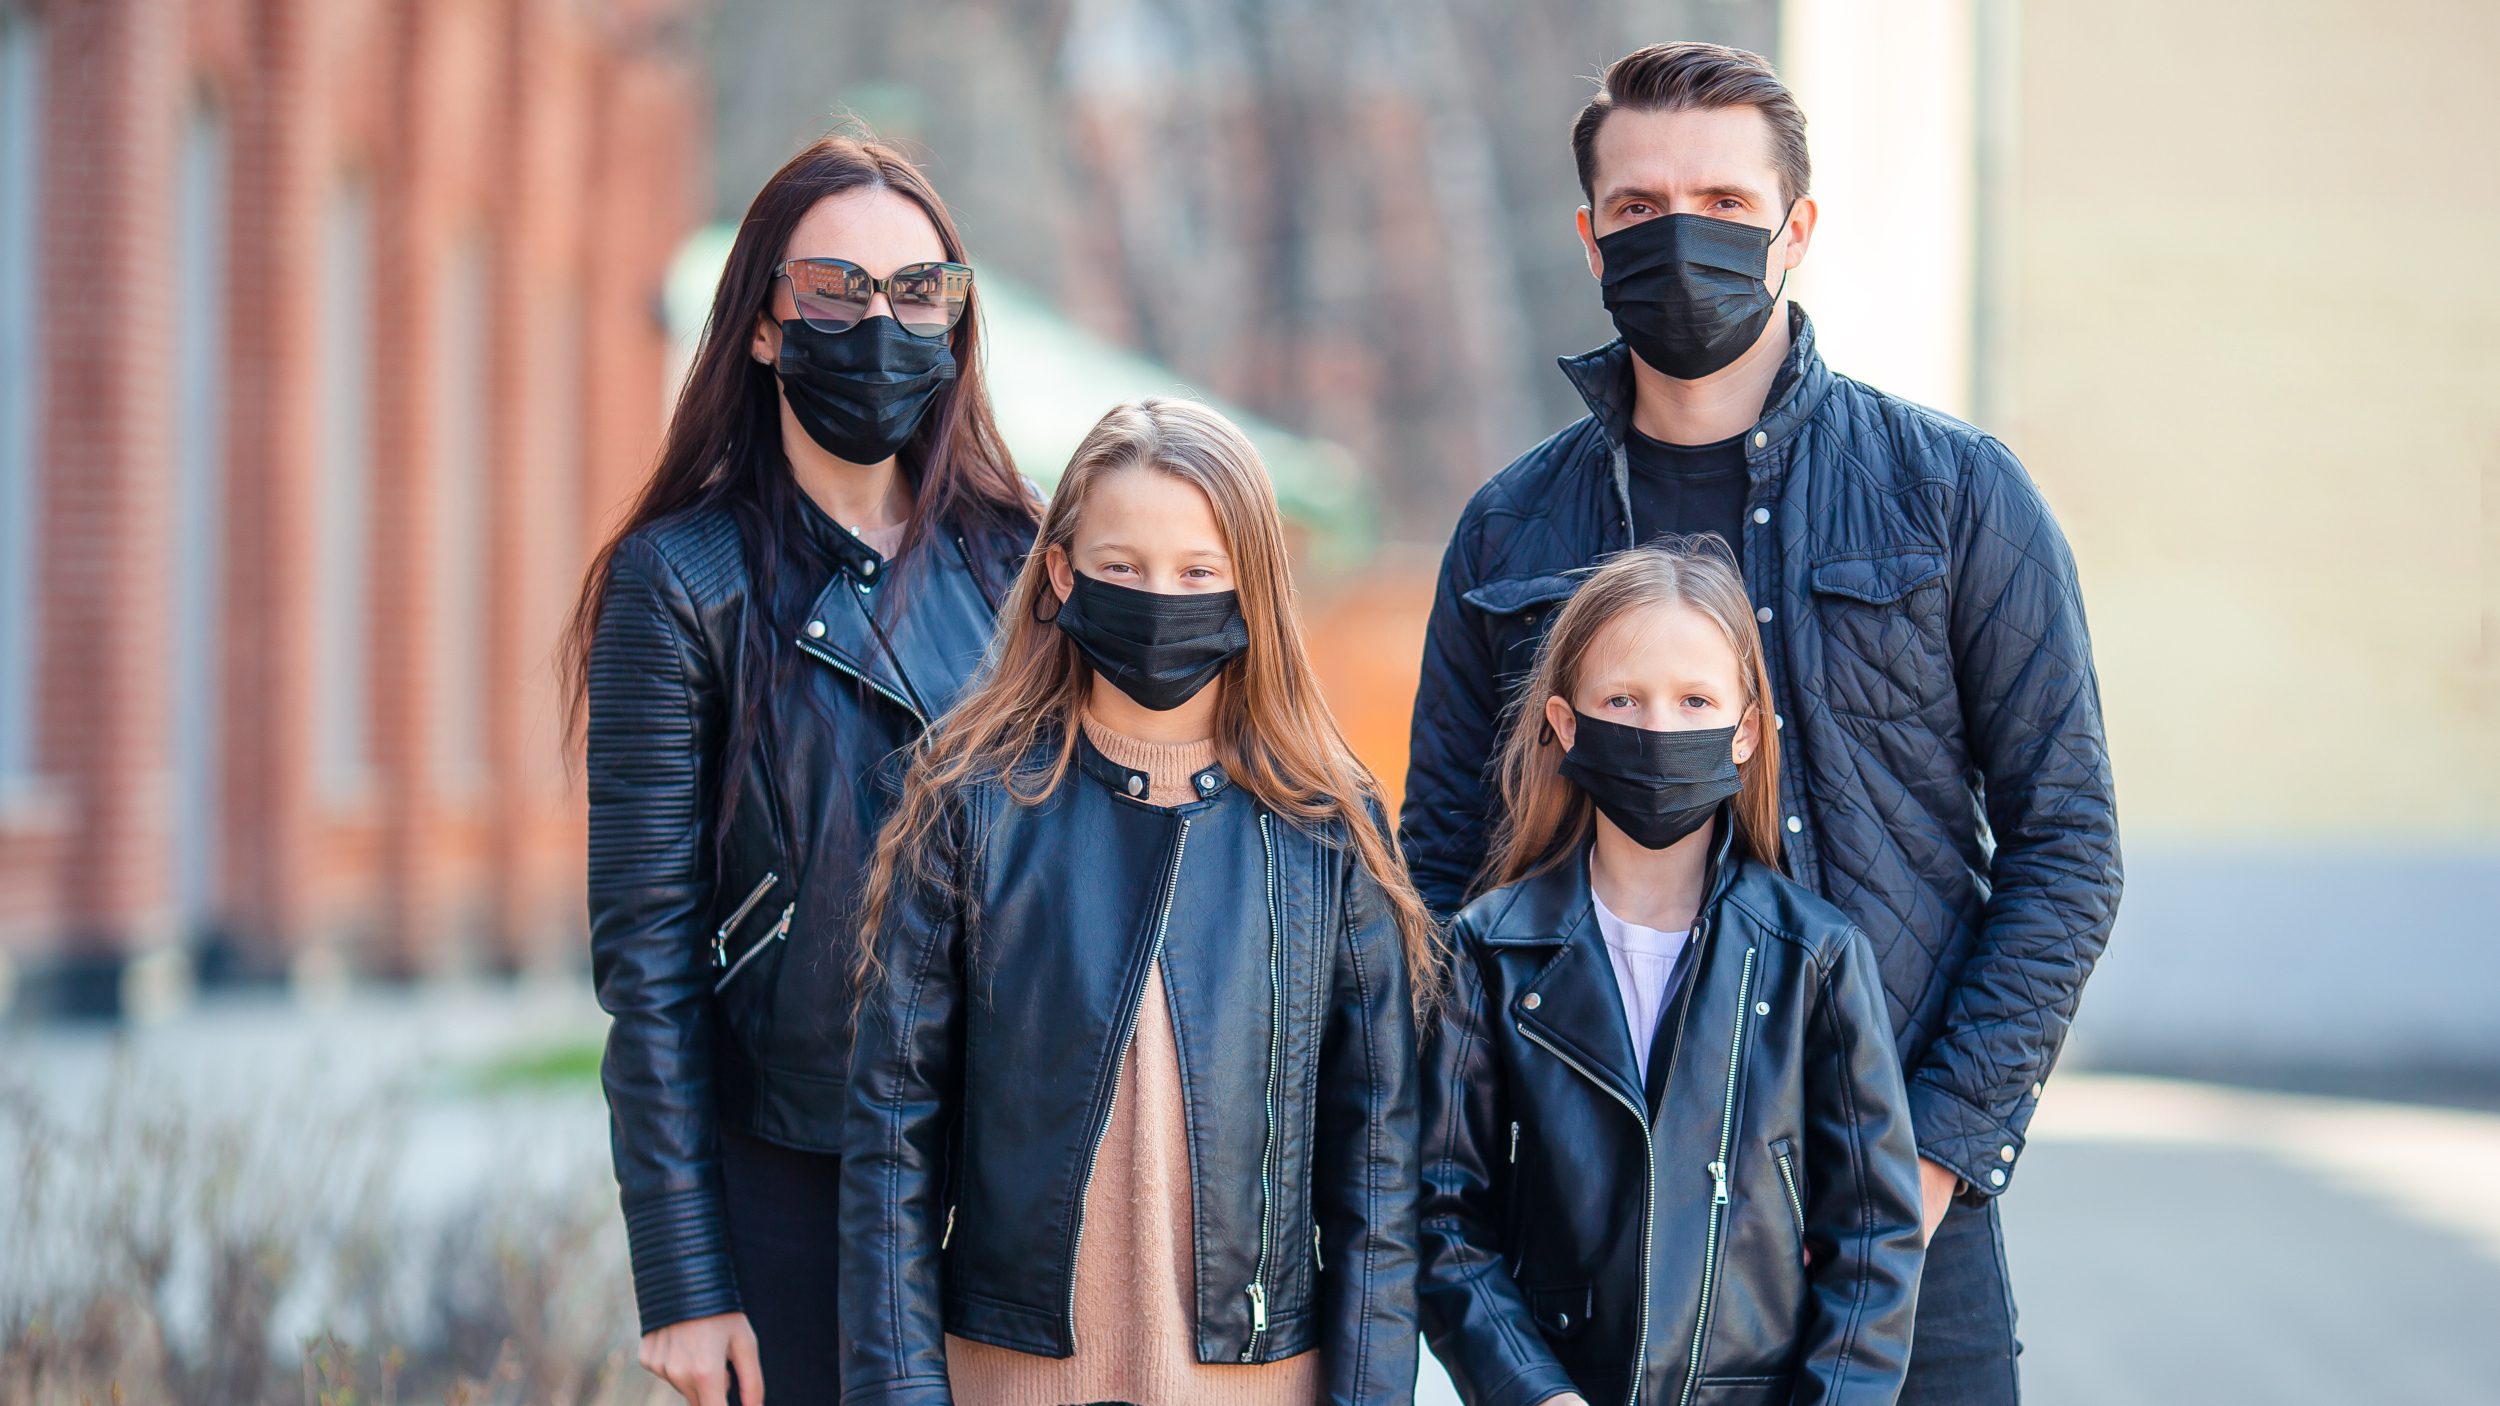 A family standing together outside wearing face masks